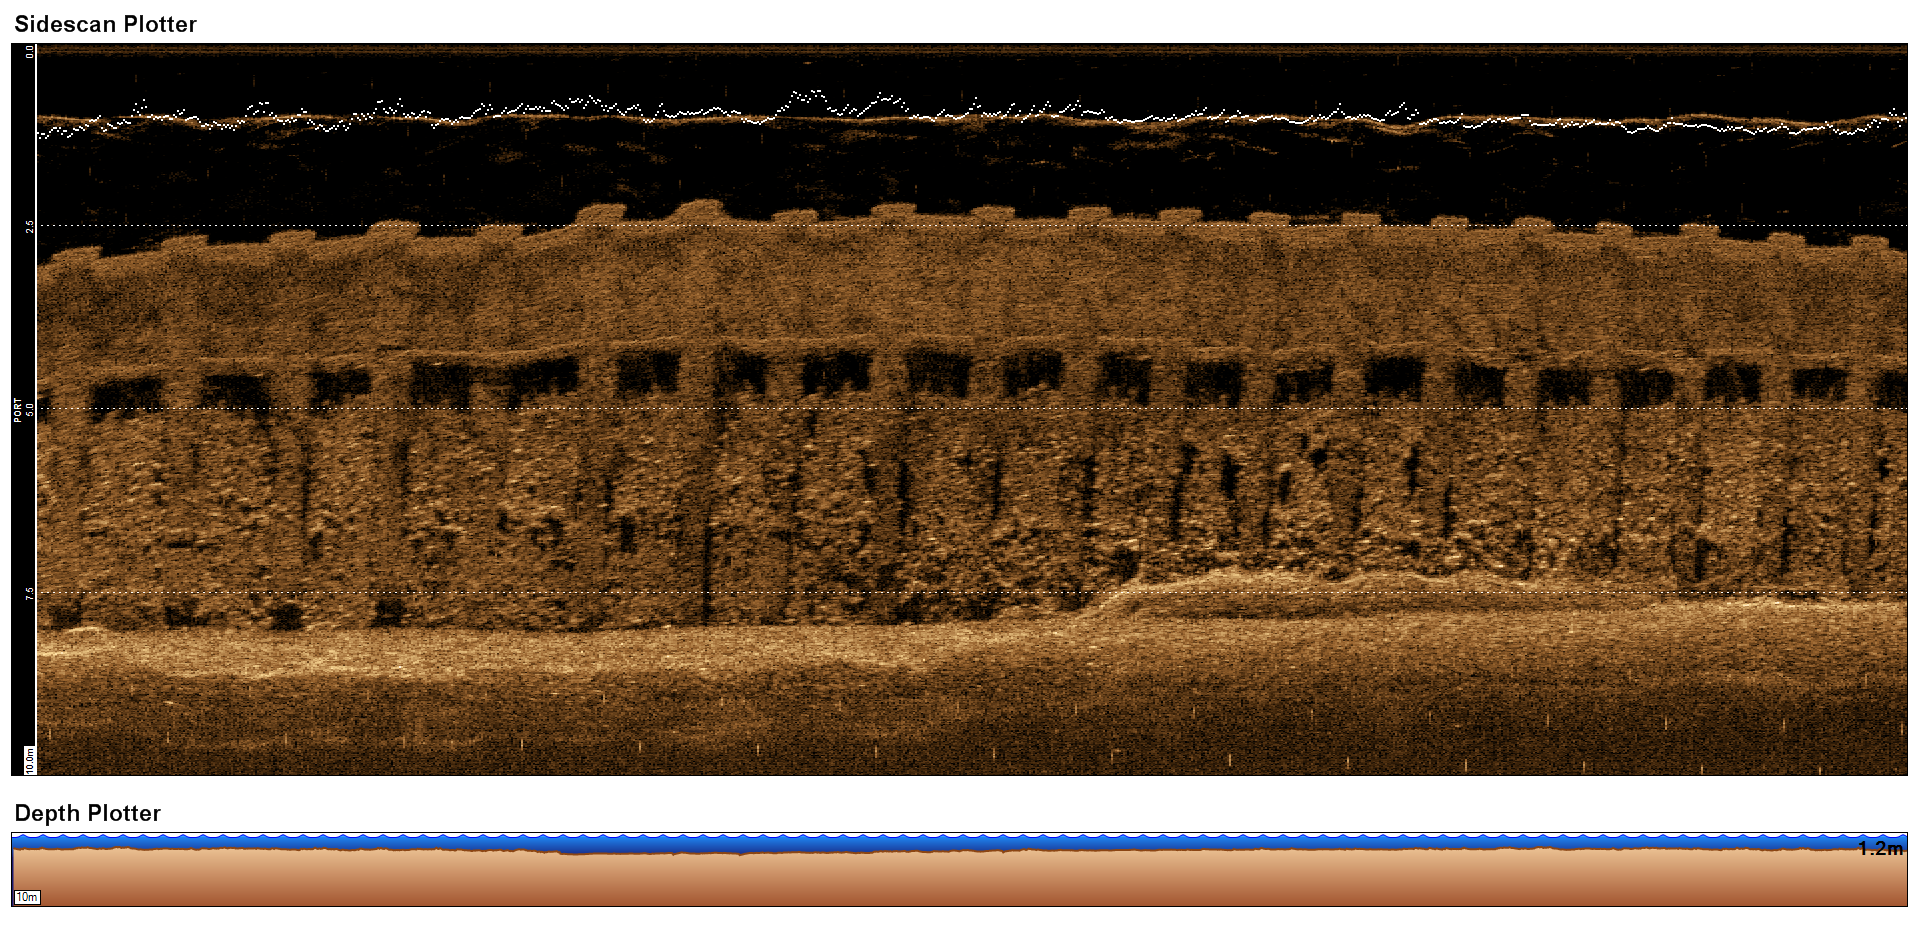 The curve of the harbour wall has slight adverse effects on the scan and this can be seen in the scan above where on the left hand side the wall appears to get shorter and fall away.